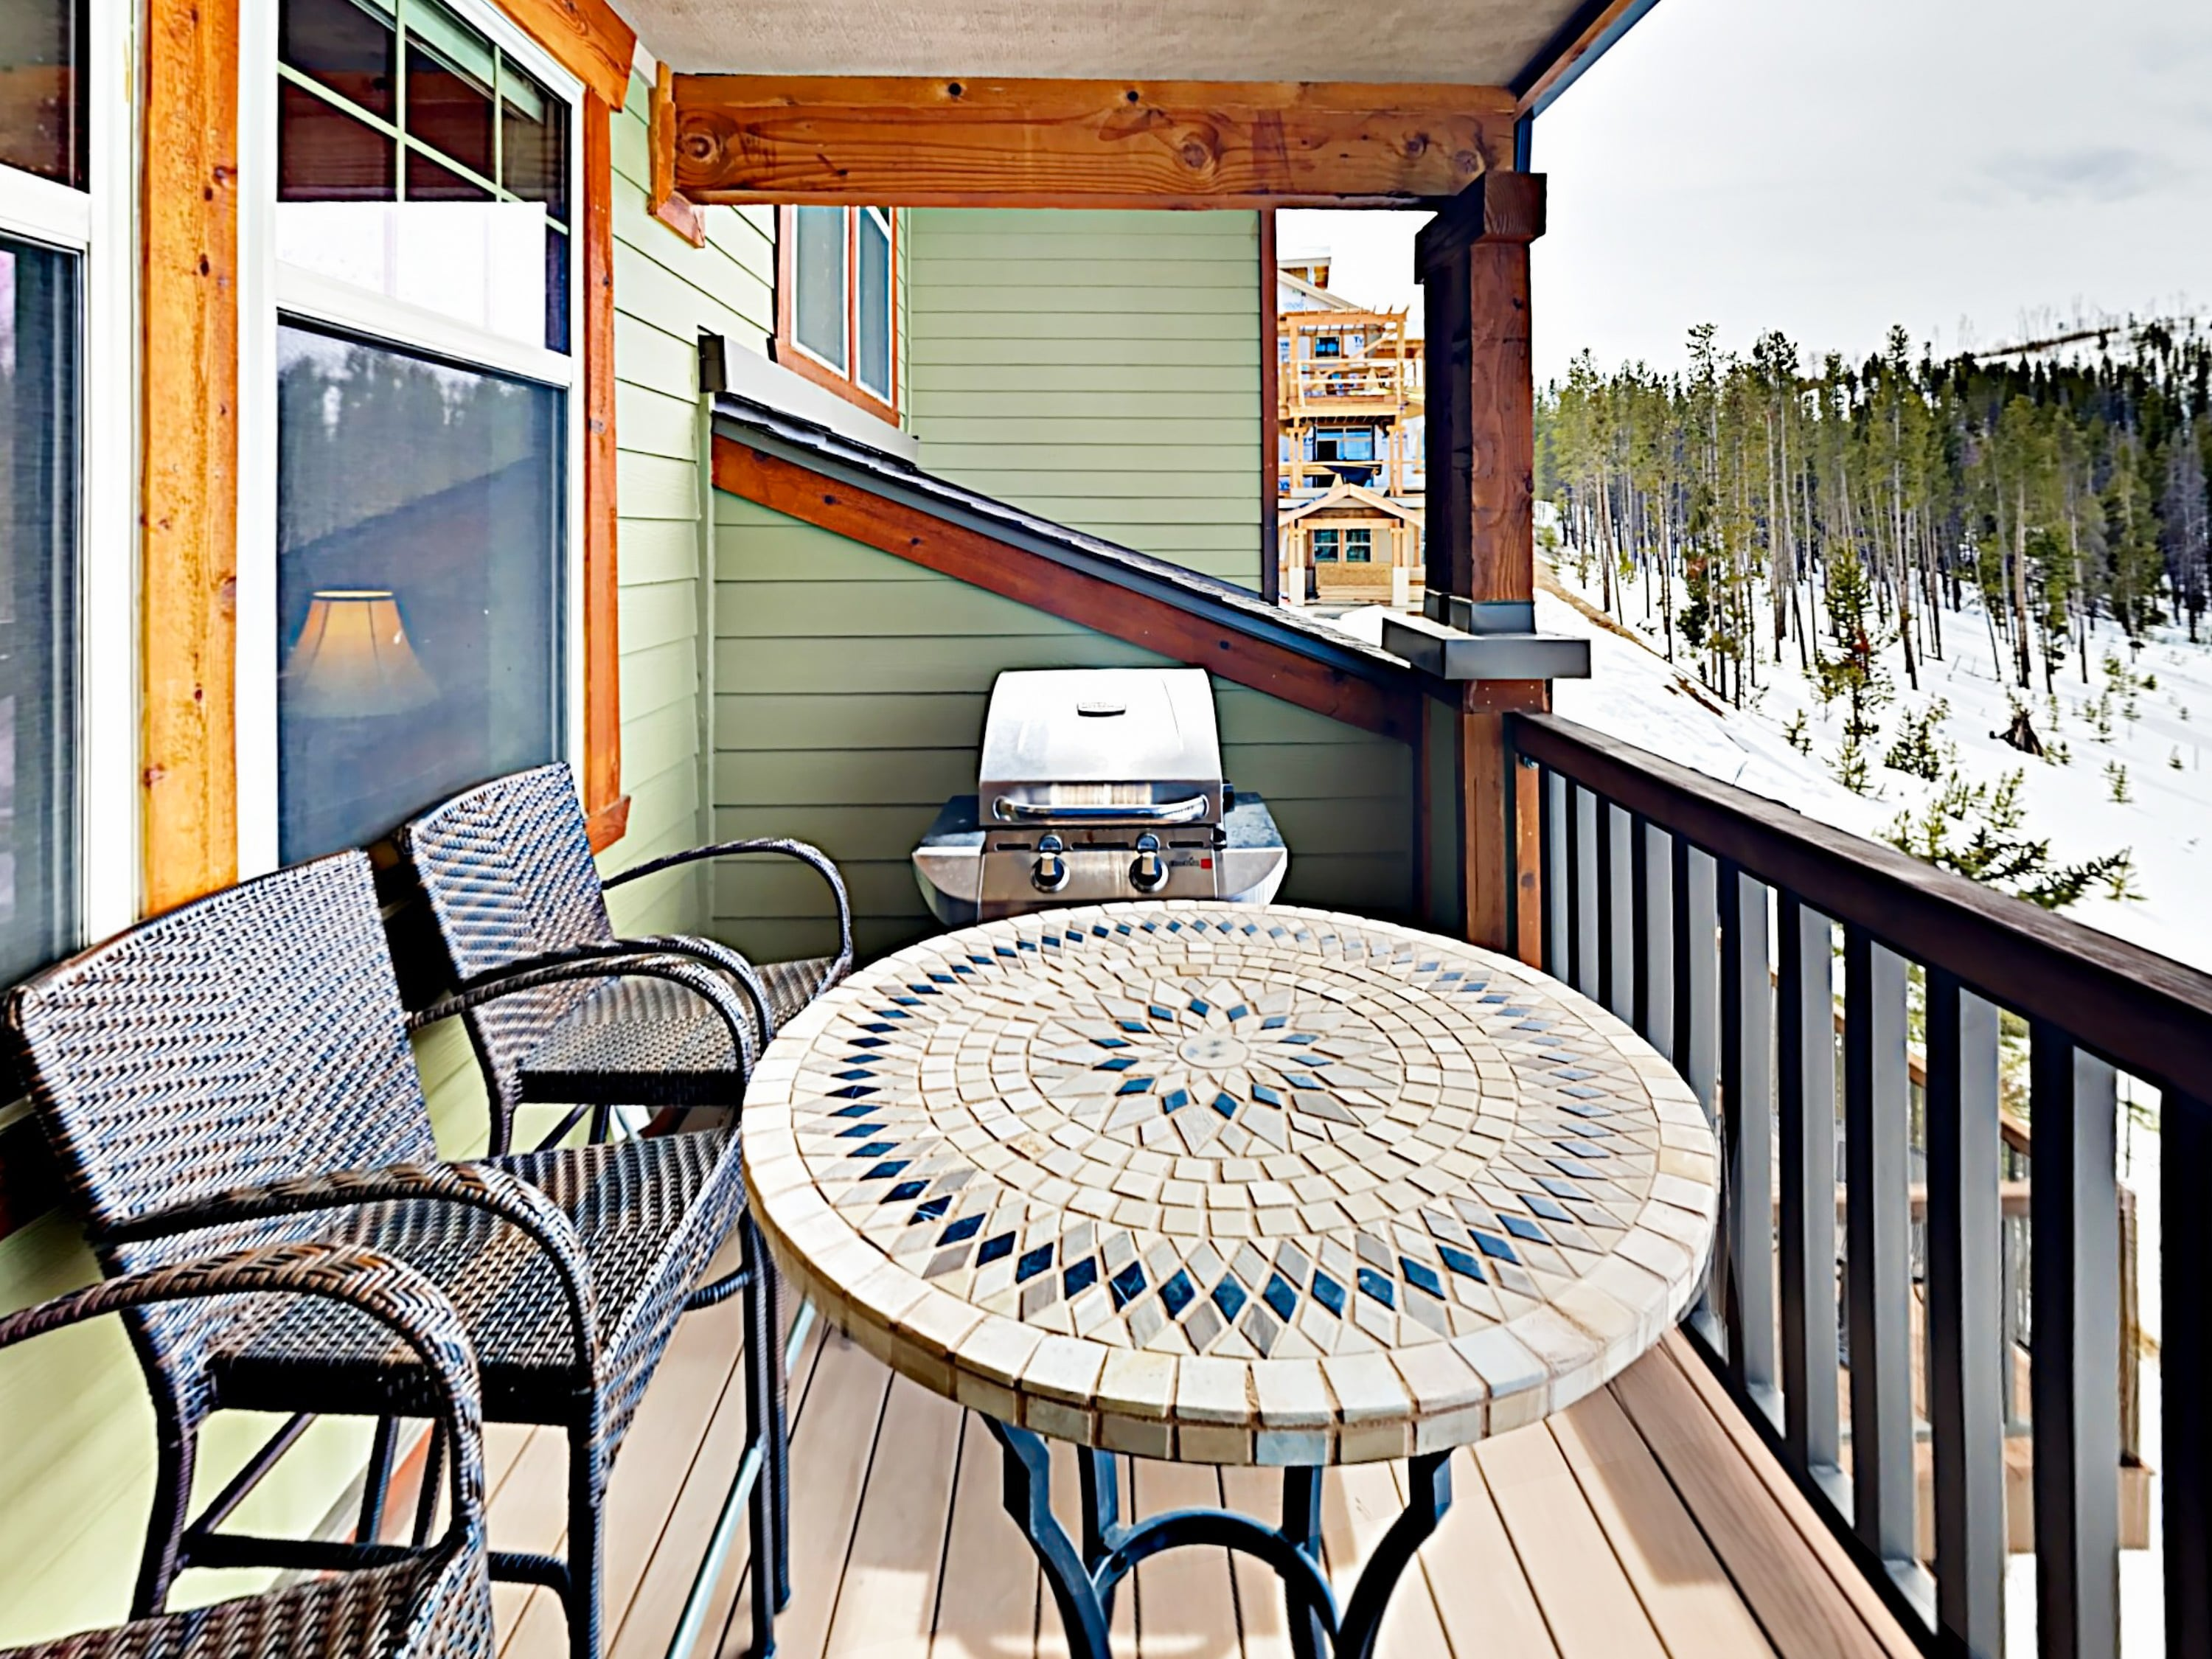 Sip morning coffee on the rear deck, furnished with a bistro table, grill, and seating for 4.